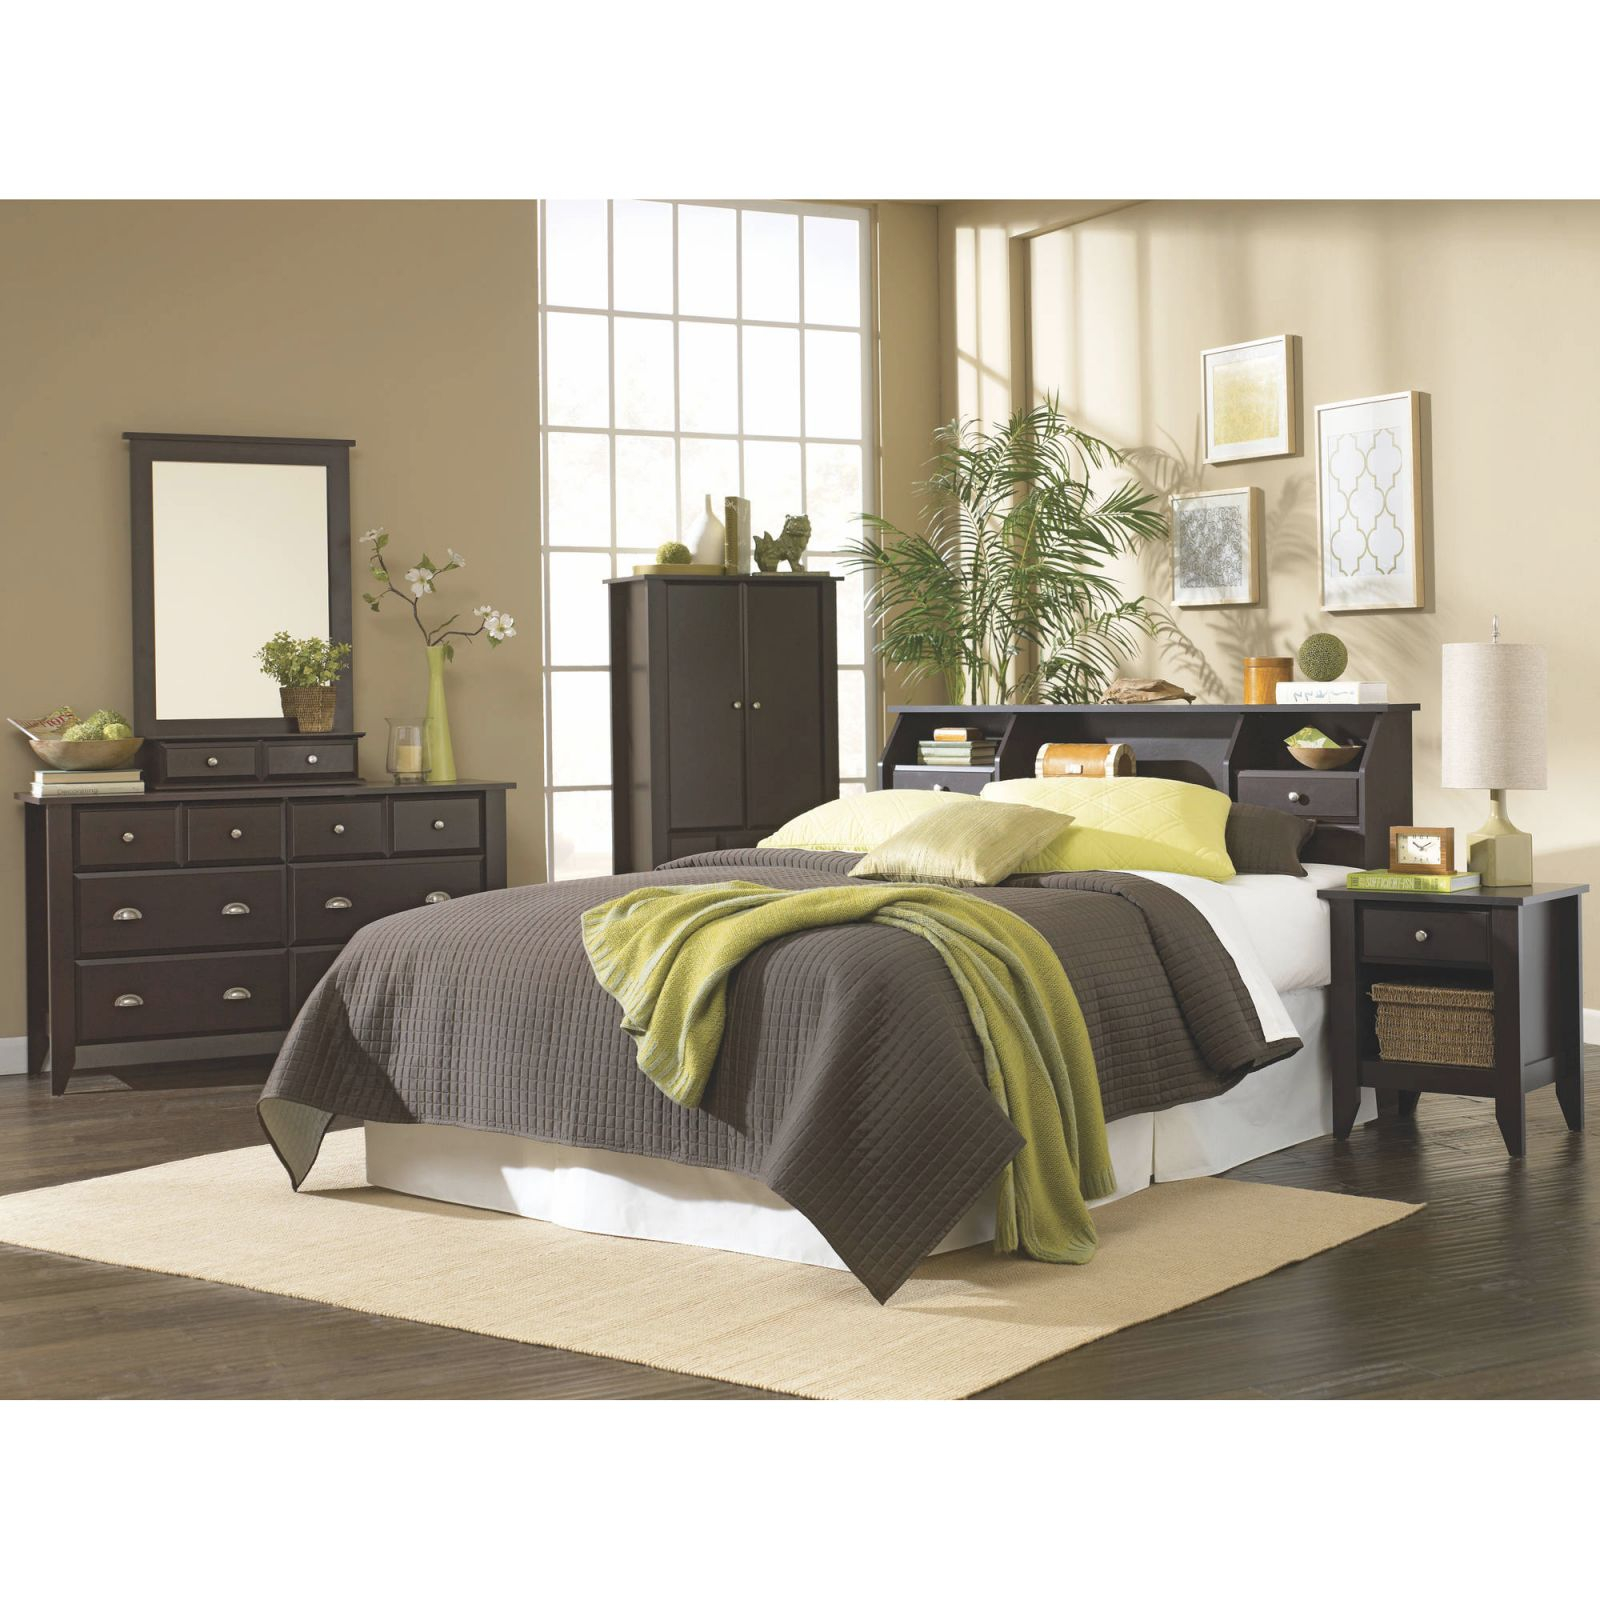 Sauder Shoal Creek Full/queen Bookcase Headboard, Multiple Colors with Full Size Bedroom Furniture Sets